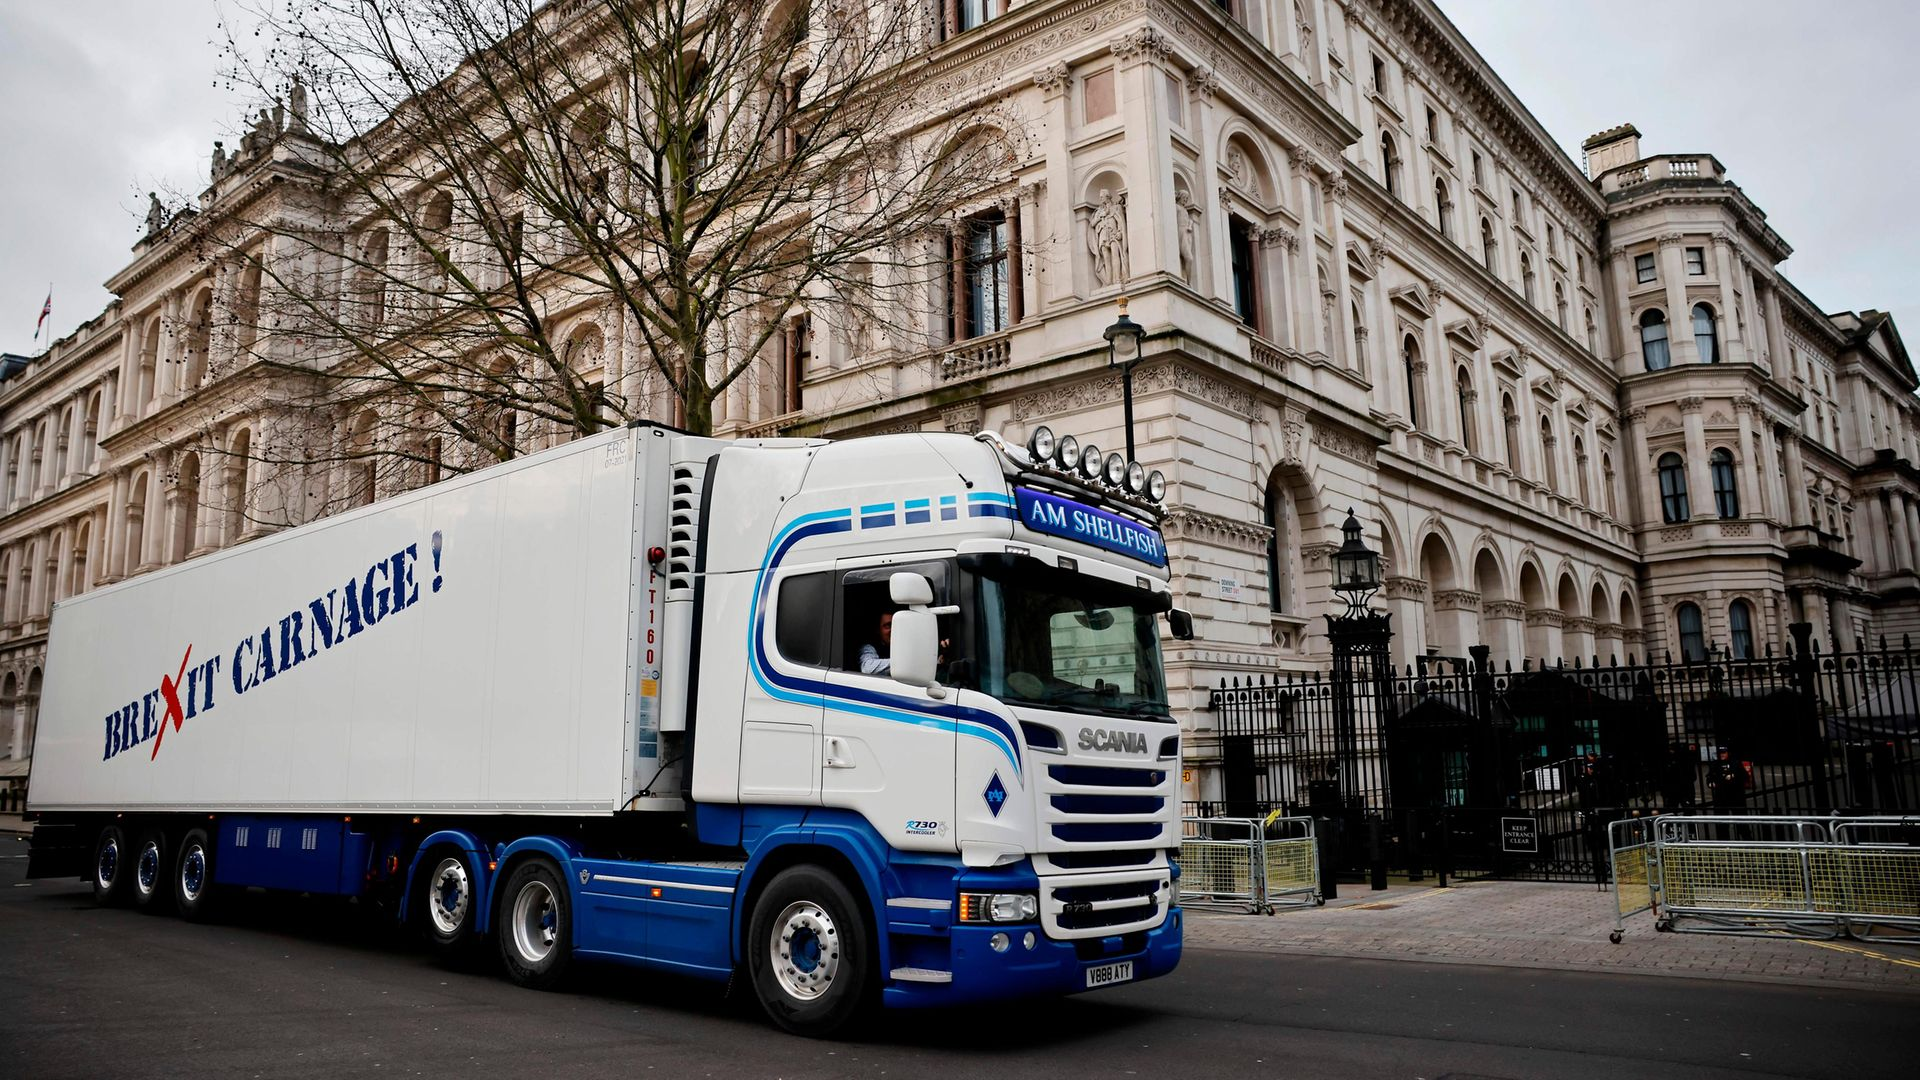 """A truck drives past Downing Street with a message that reads """"Brexit carnage!"""" in a protest action by Scottish fishermen against post-Brexit red tape and coronavirus restrictions, which they say could threaten the future of the industry, in London on January 18, 2021 - Credit: AFP via Getty Images"""